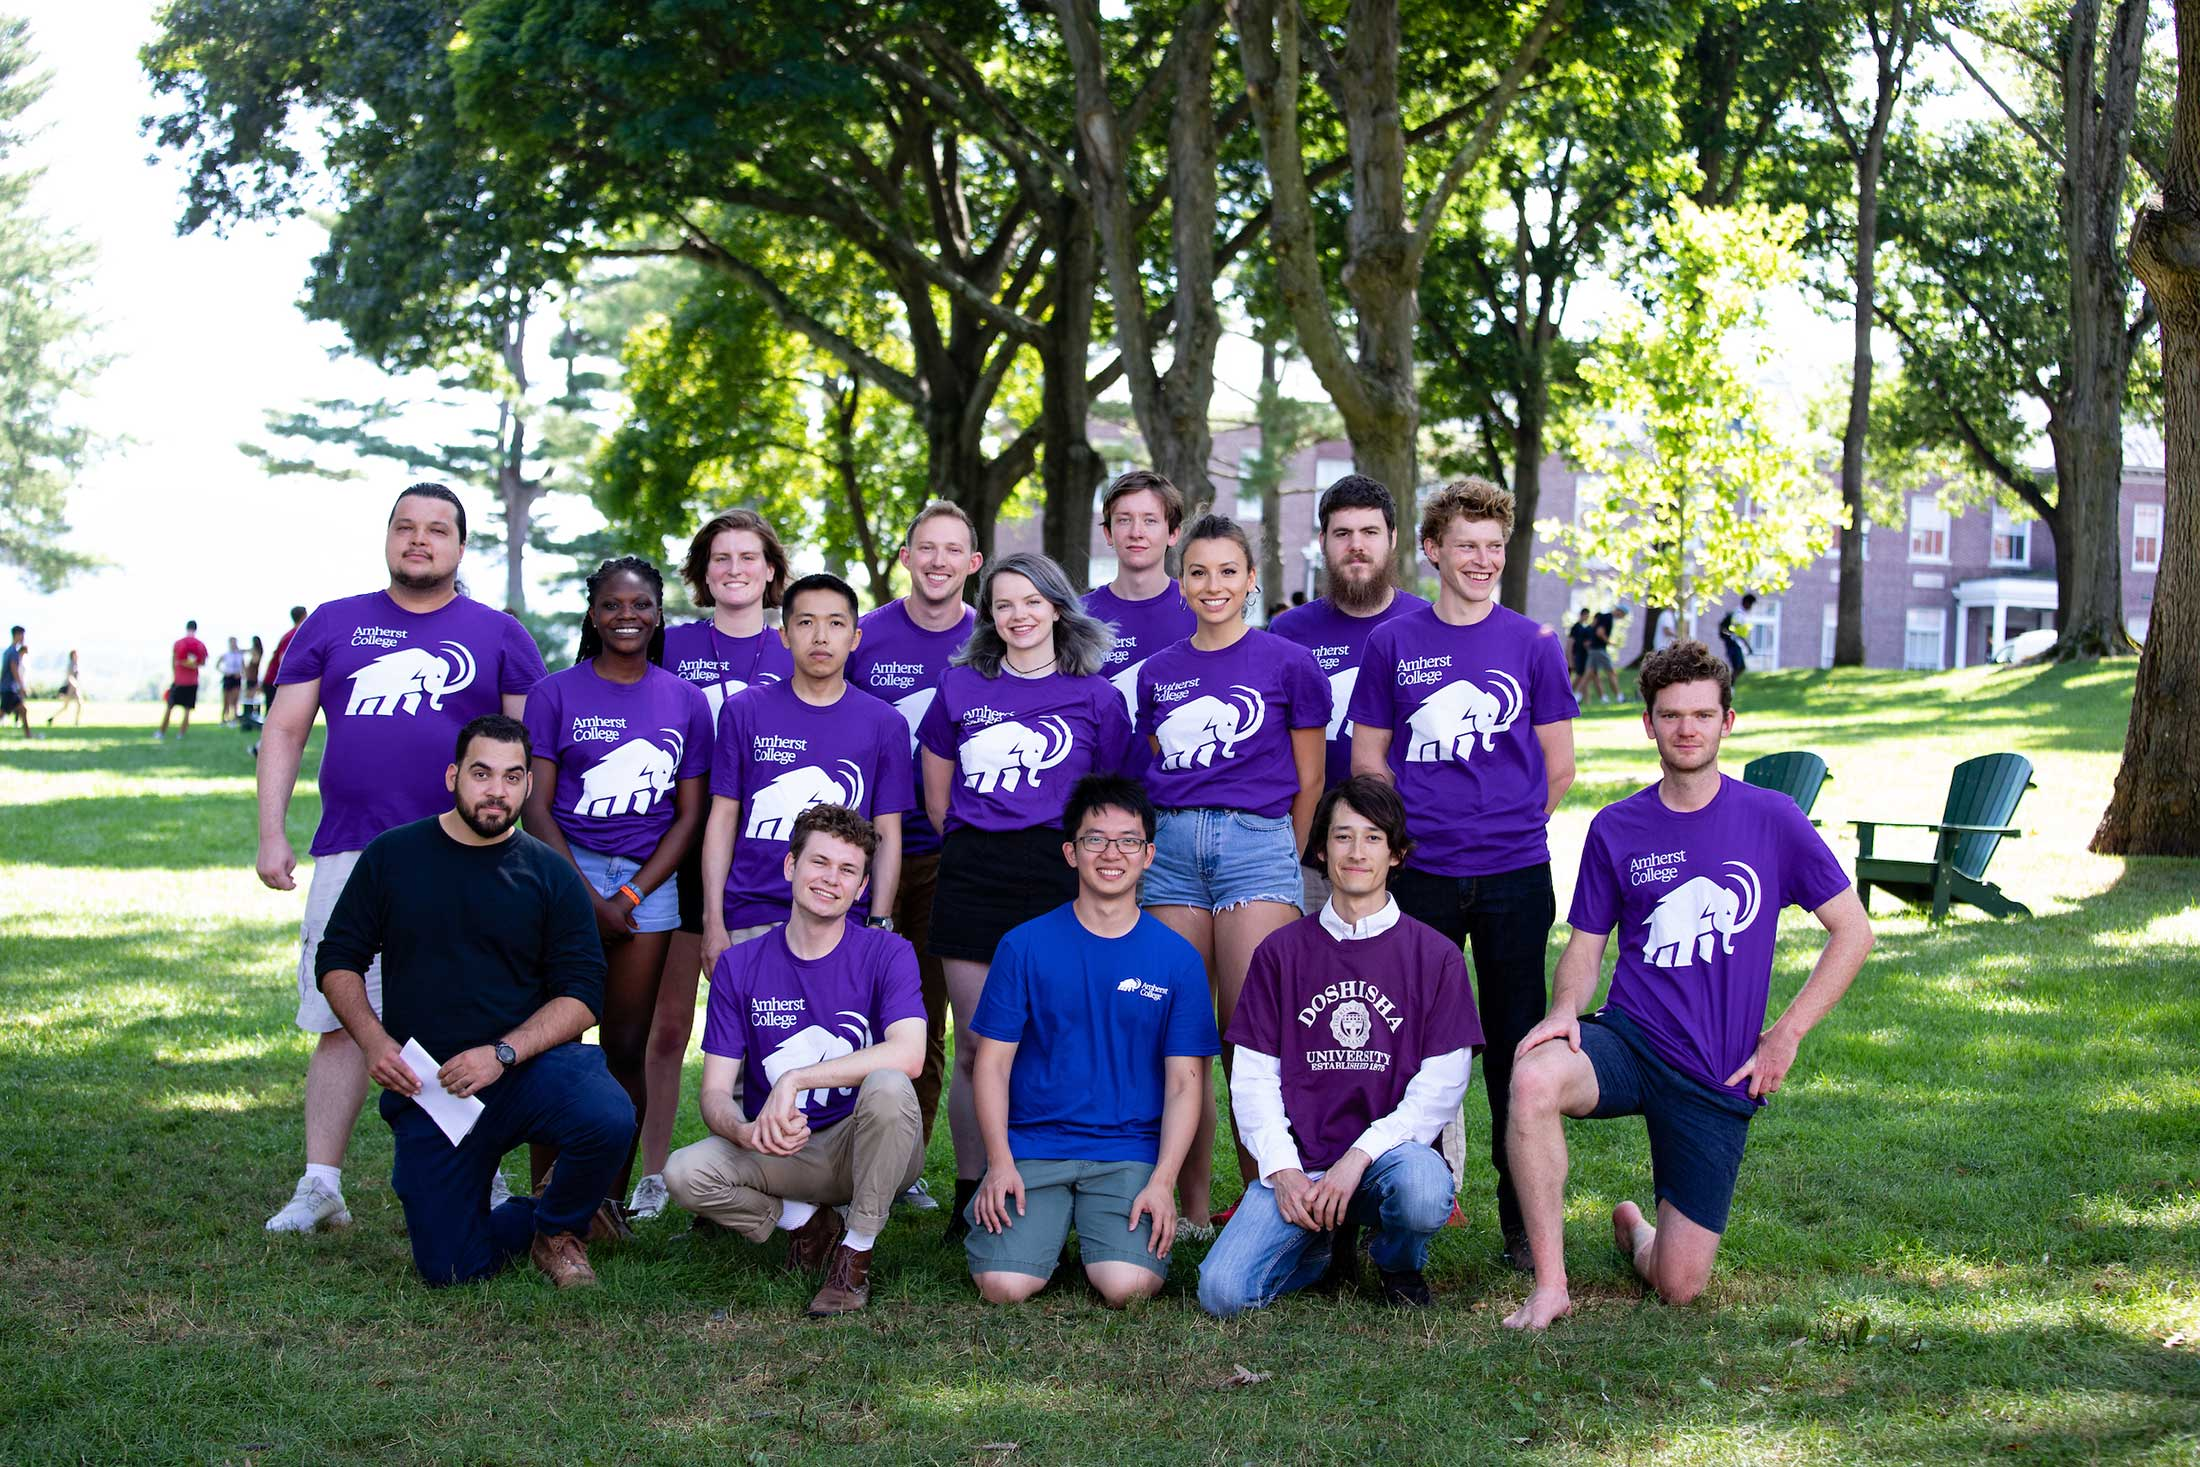 A group of transfer students -- most of them wearing purple mammoth tshirts -- pose together on the academic quad.